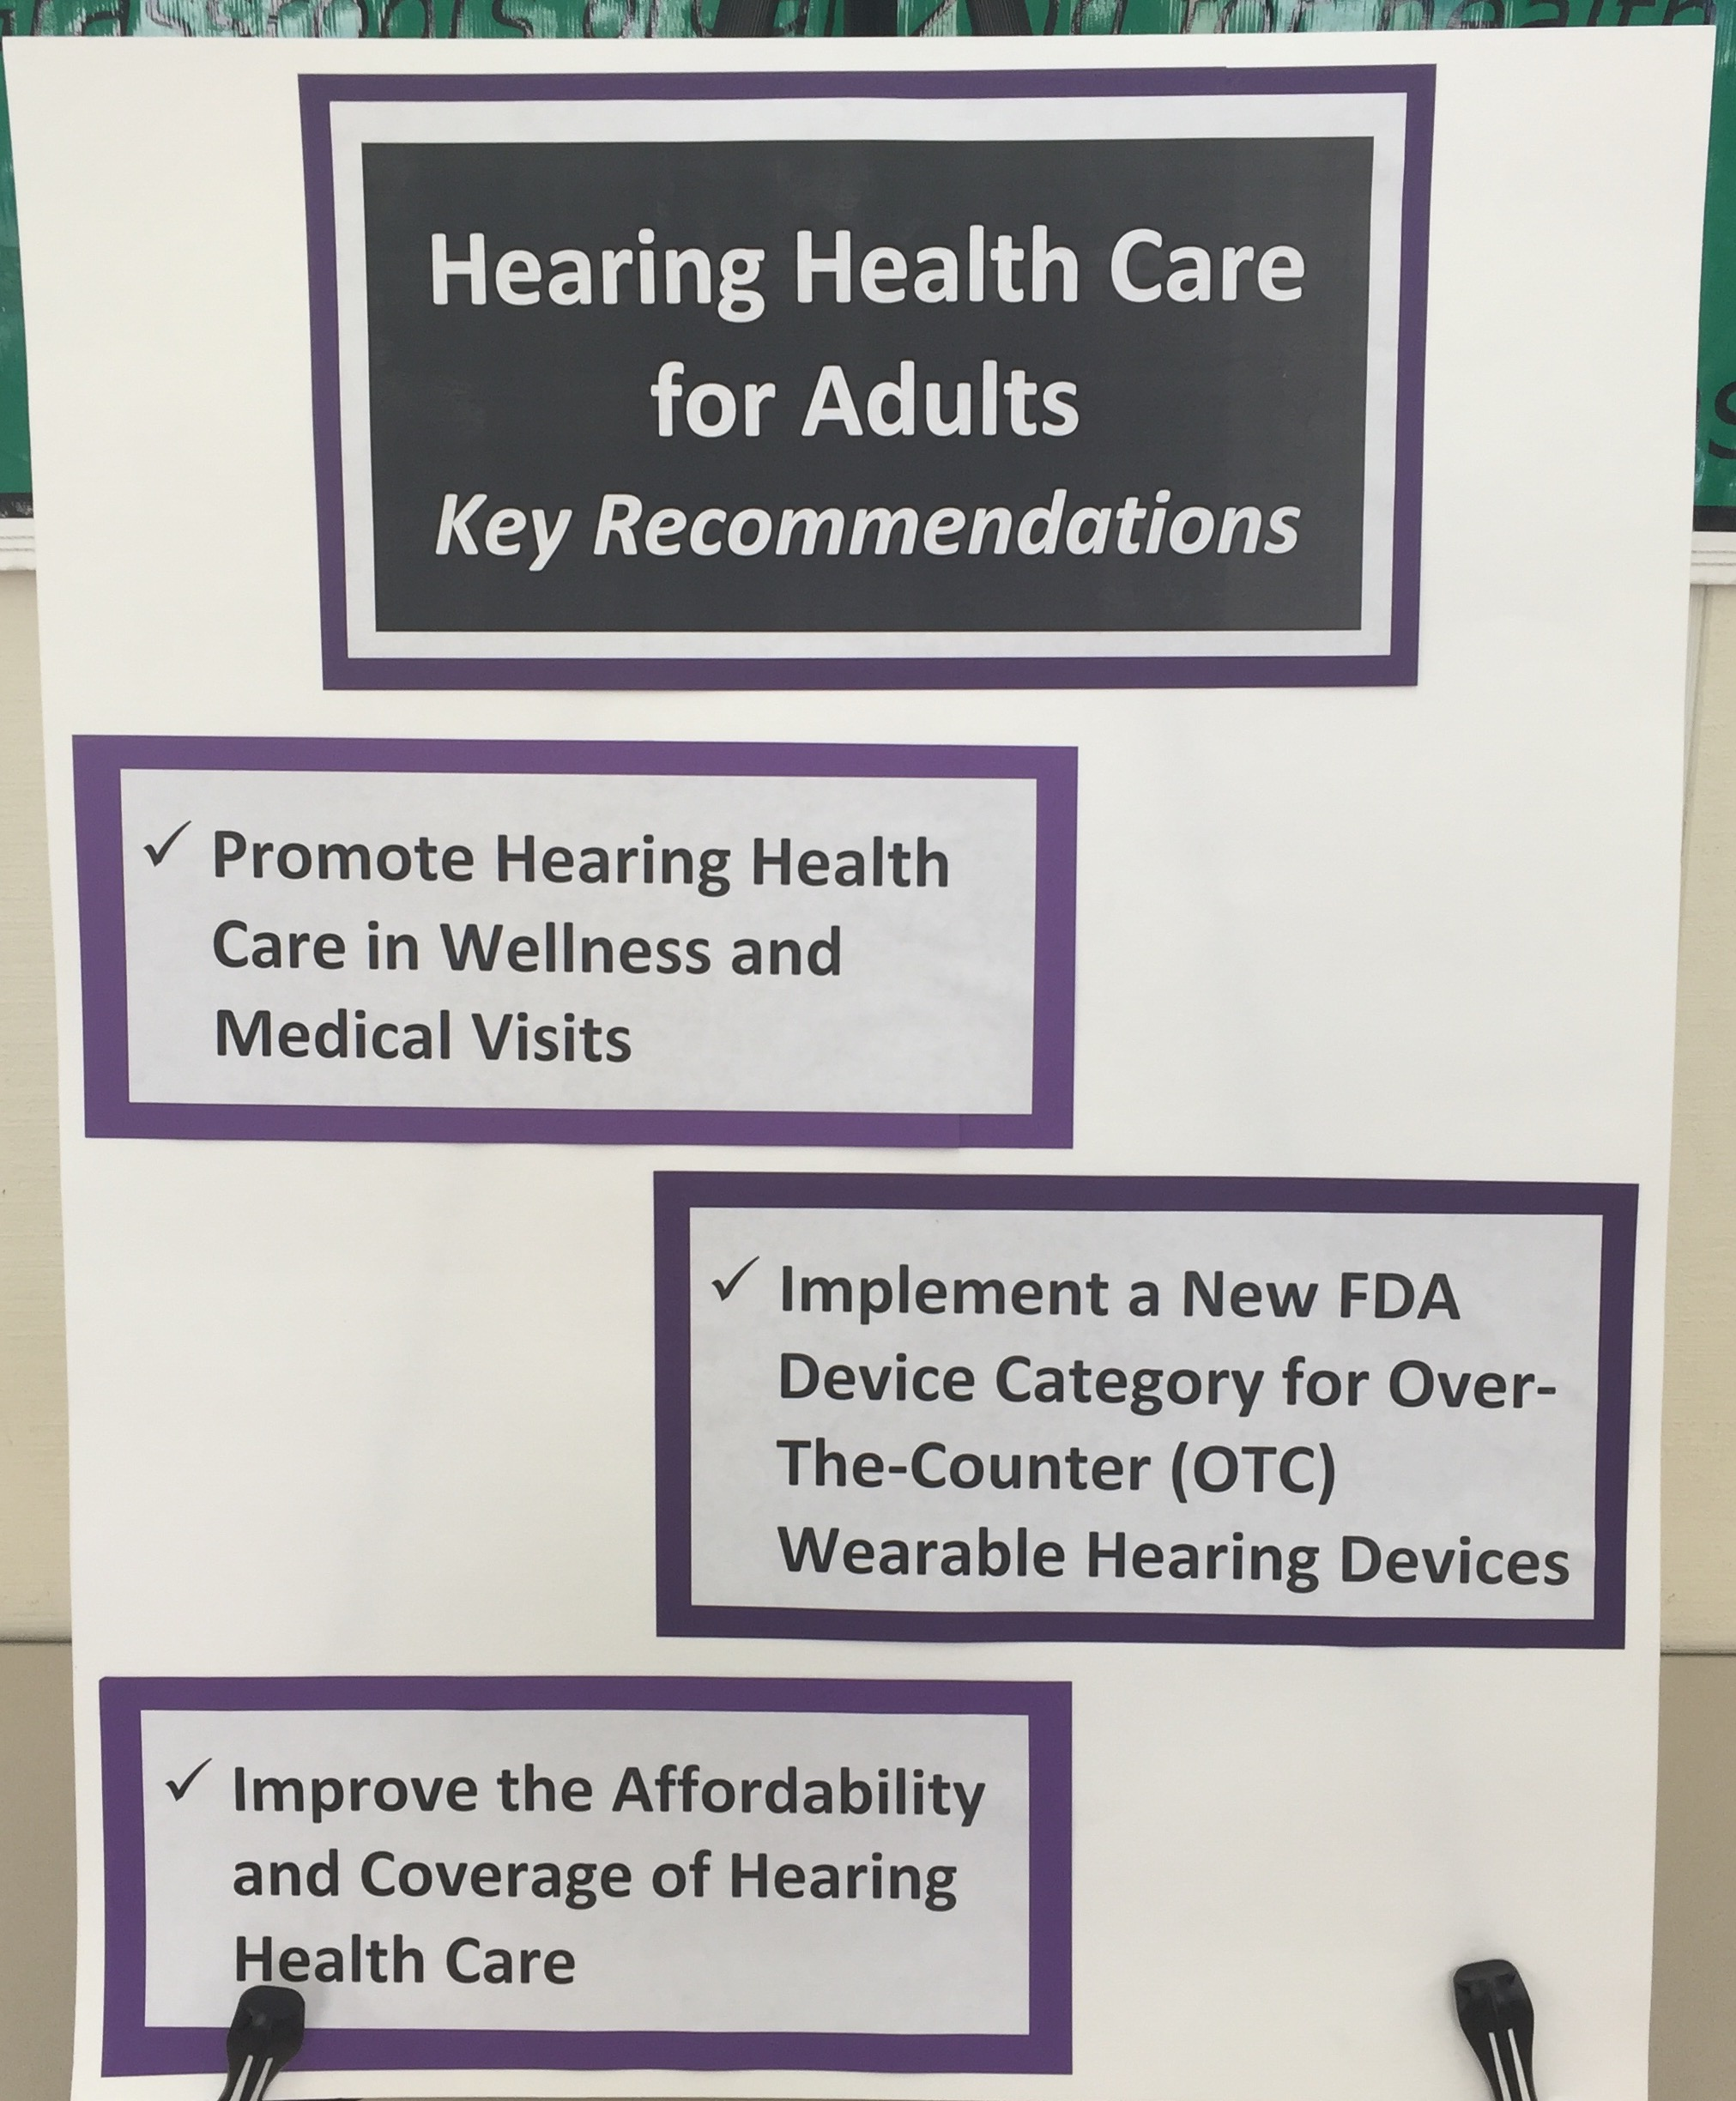 Hearing Aid Recommendations